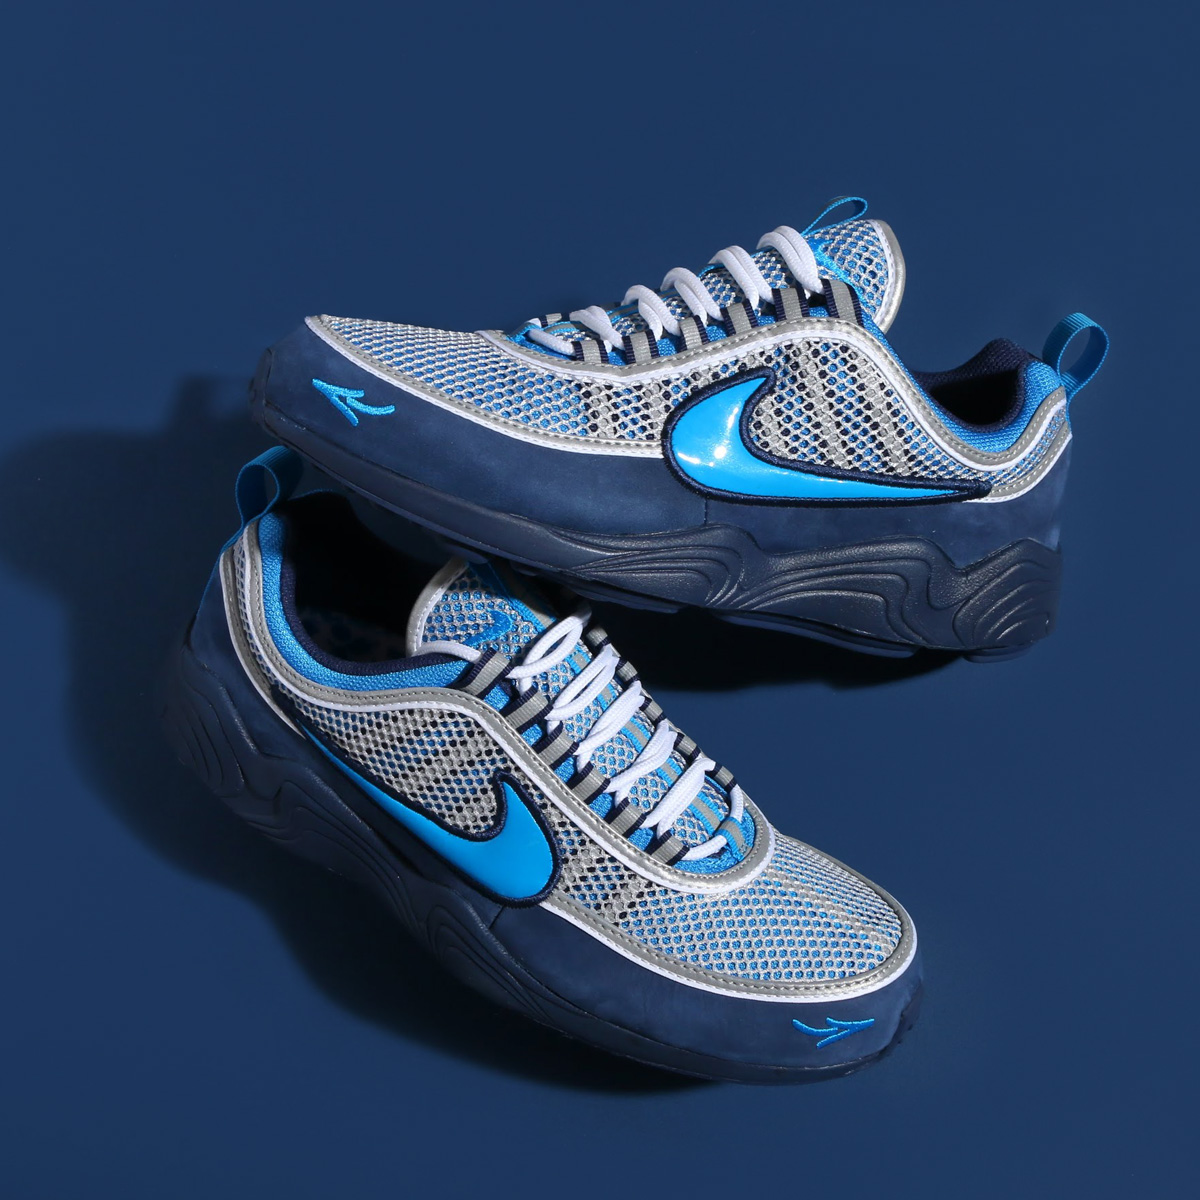 NIKE AIR ZOOM SPIRIDON '16 / STASH(ナイキ エア ズーム スピリドン 16 スタッシュ) (HARBOR BLUE/HERITAGE CYAN-MIDNIGHT NAVY)【メンズ】17HO-S